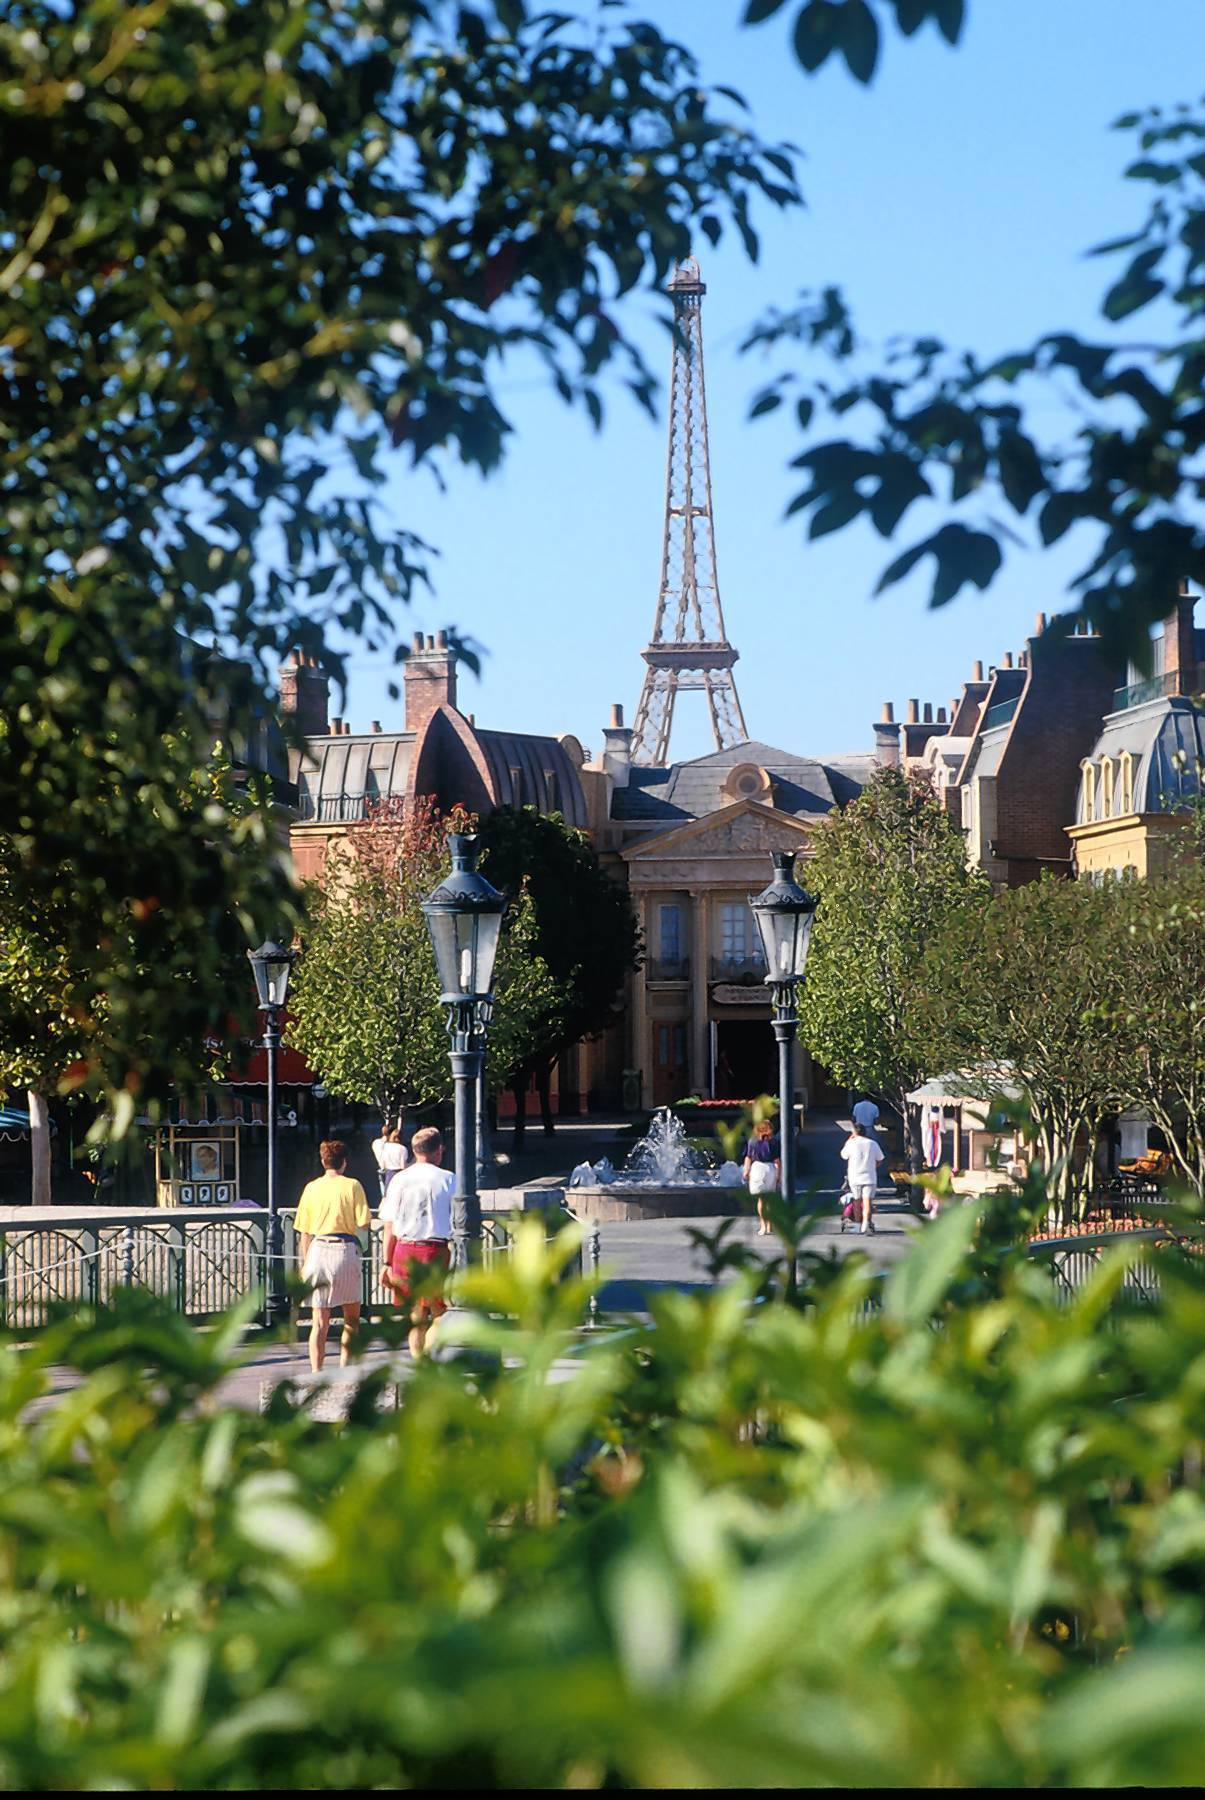 Disney is shutting down the pricey French restaurant in Epcot to make way for a less formal eatery.